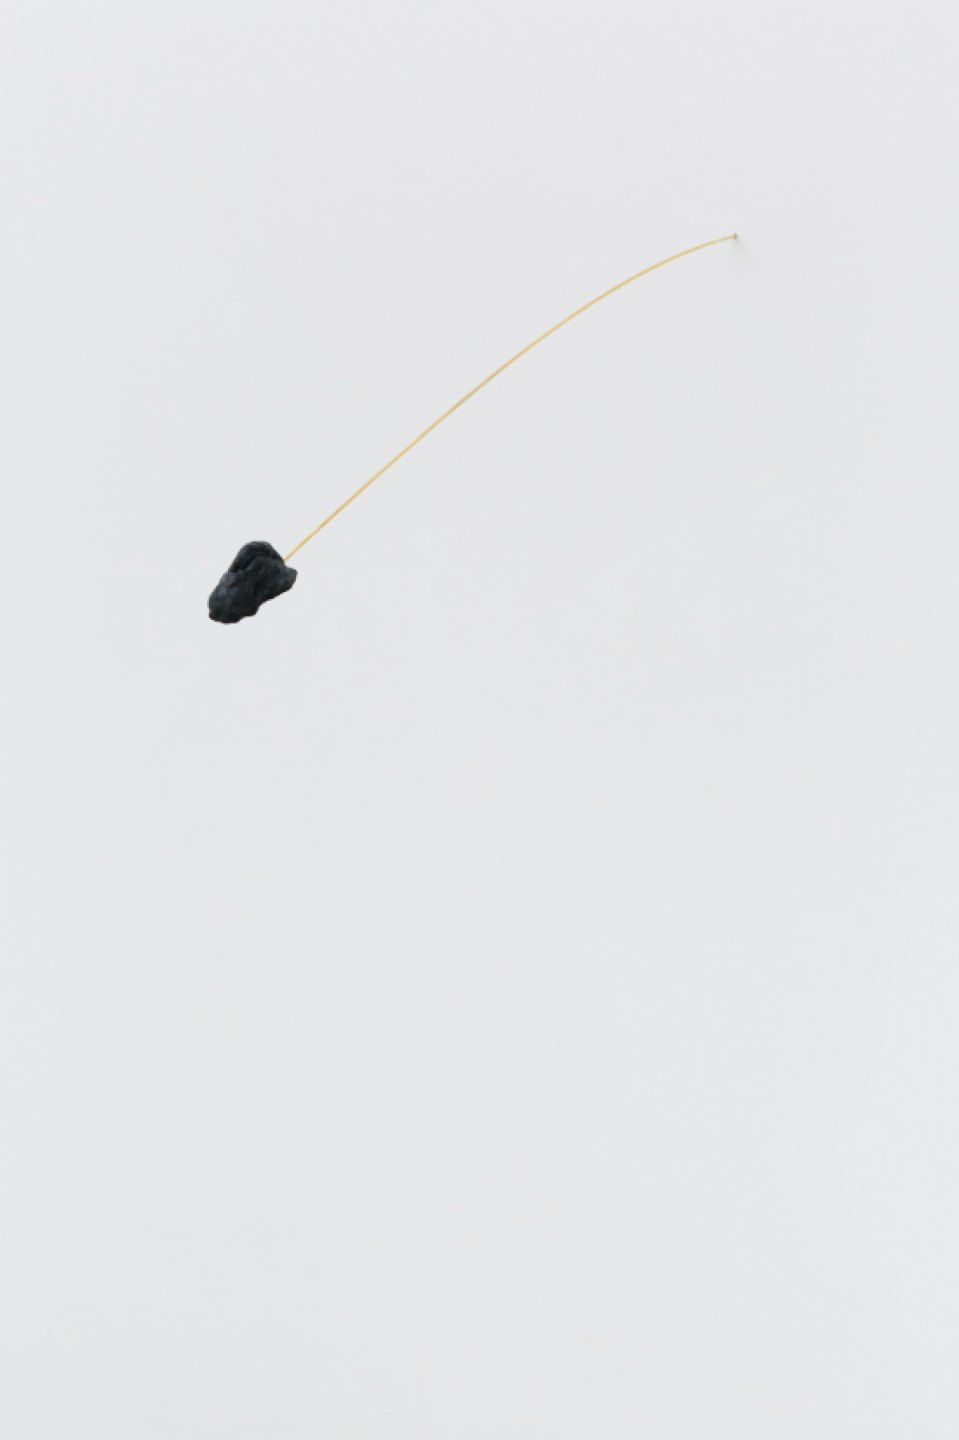 Paloma Bosquê, <em>Mergulho</em>, 2016, brass rod and beewax stone with pitch, 100 × 7 cm - Mendes Wood DM